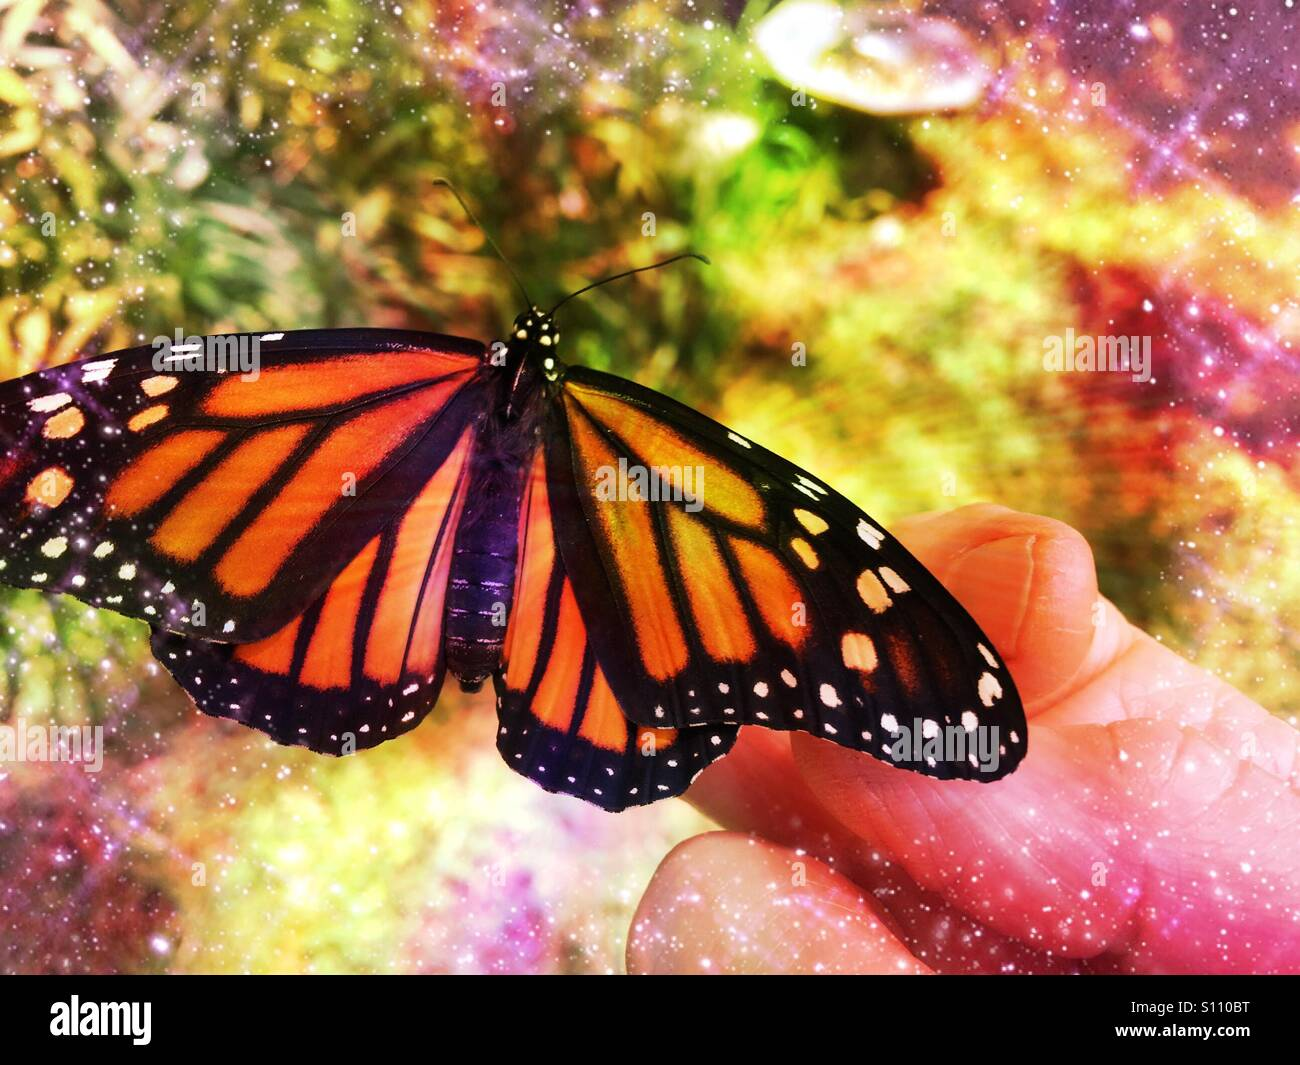 Newly emerged female monarch butterfly on a woman's hand, Ponte Vedra Beach, Florida, USA. Stock Photo